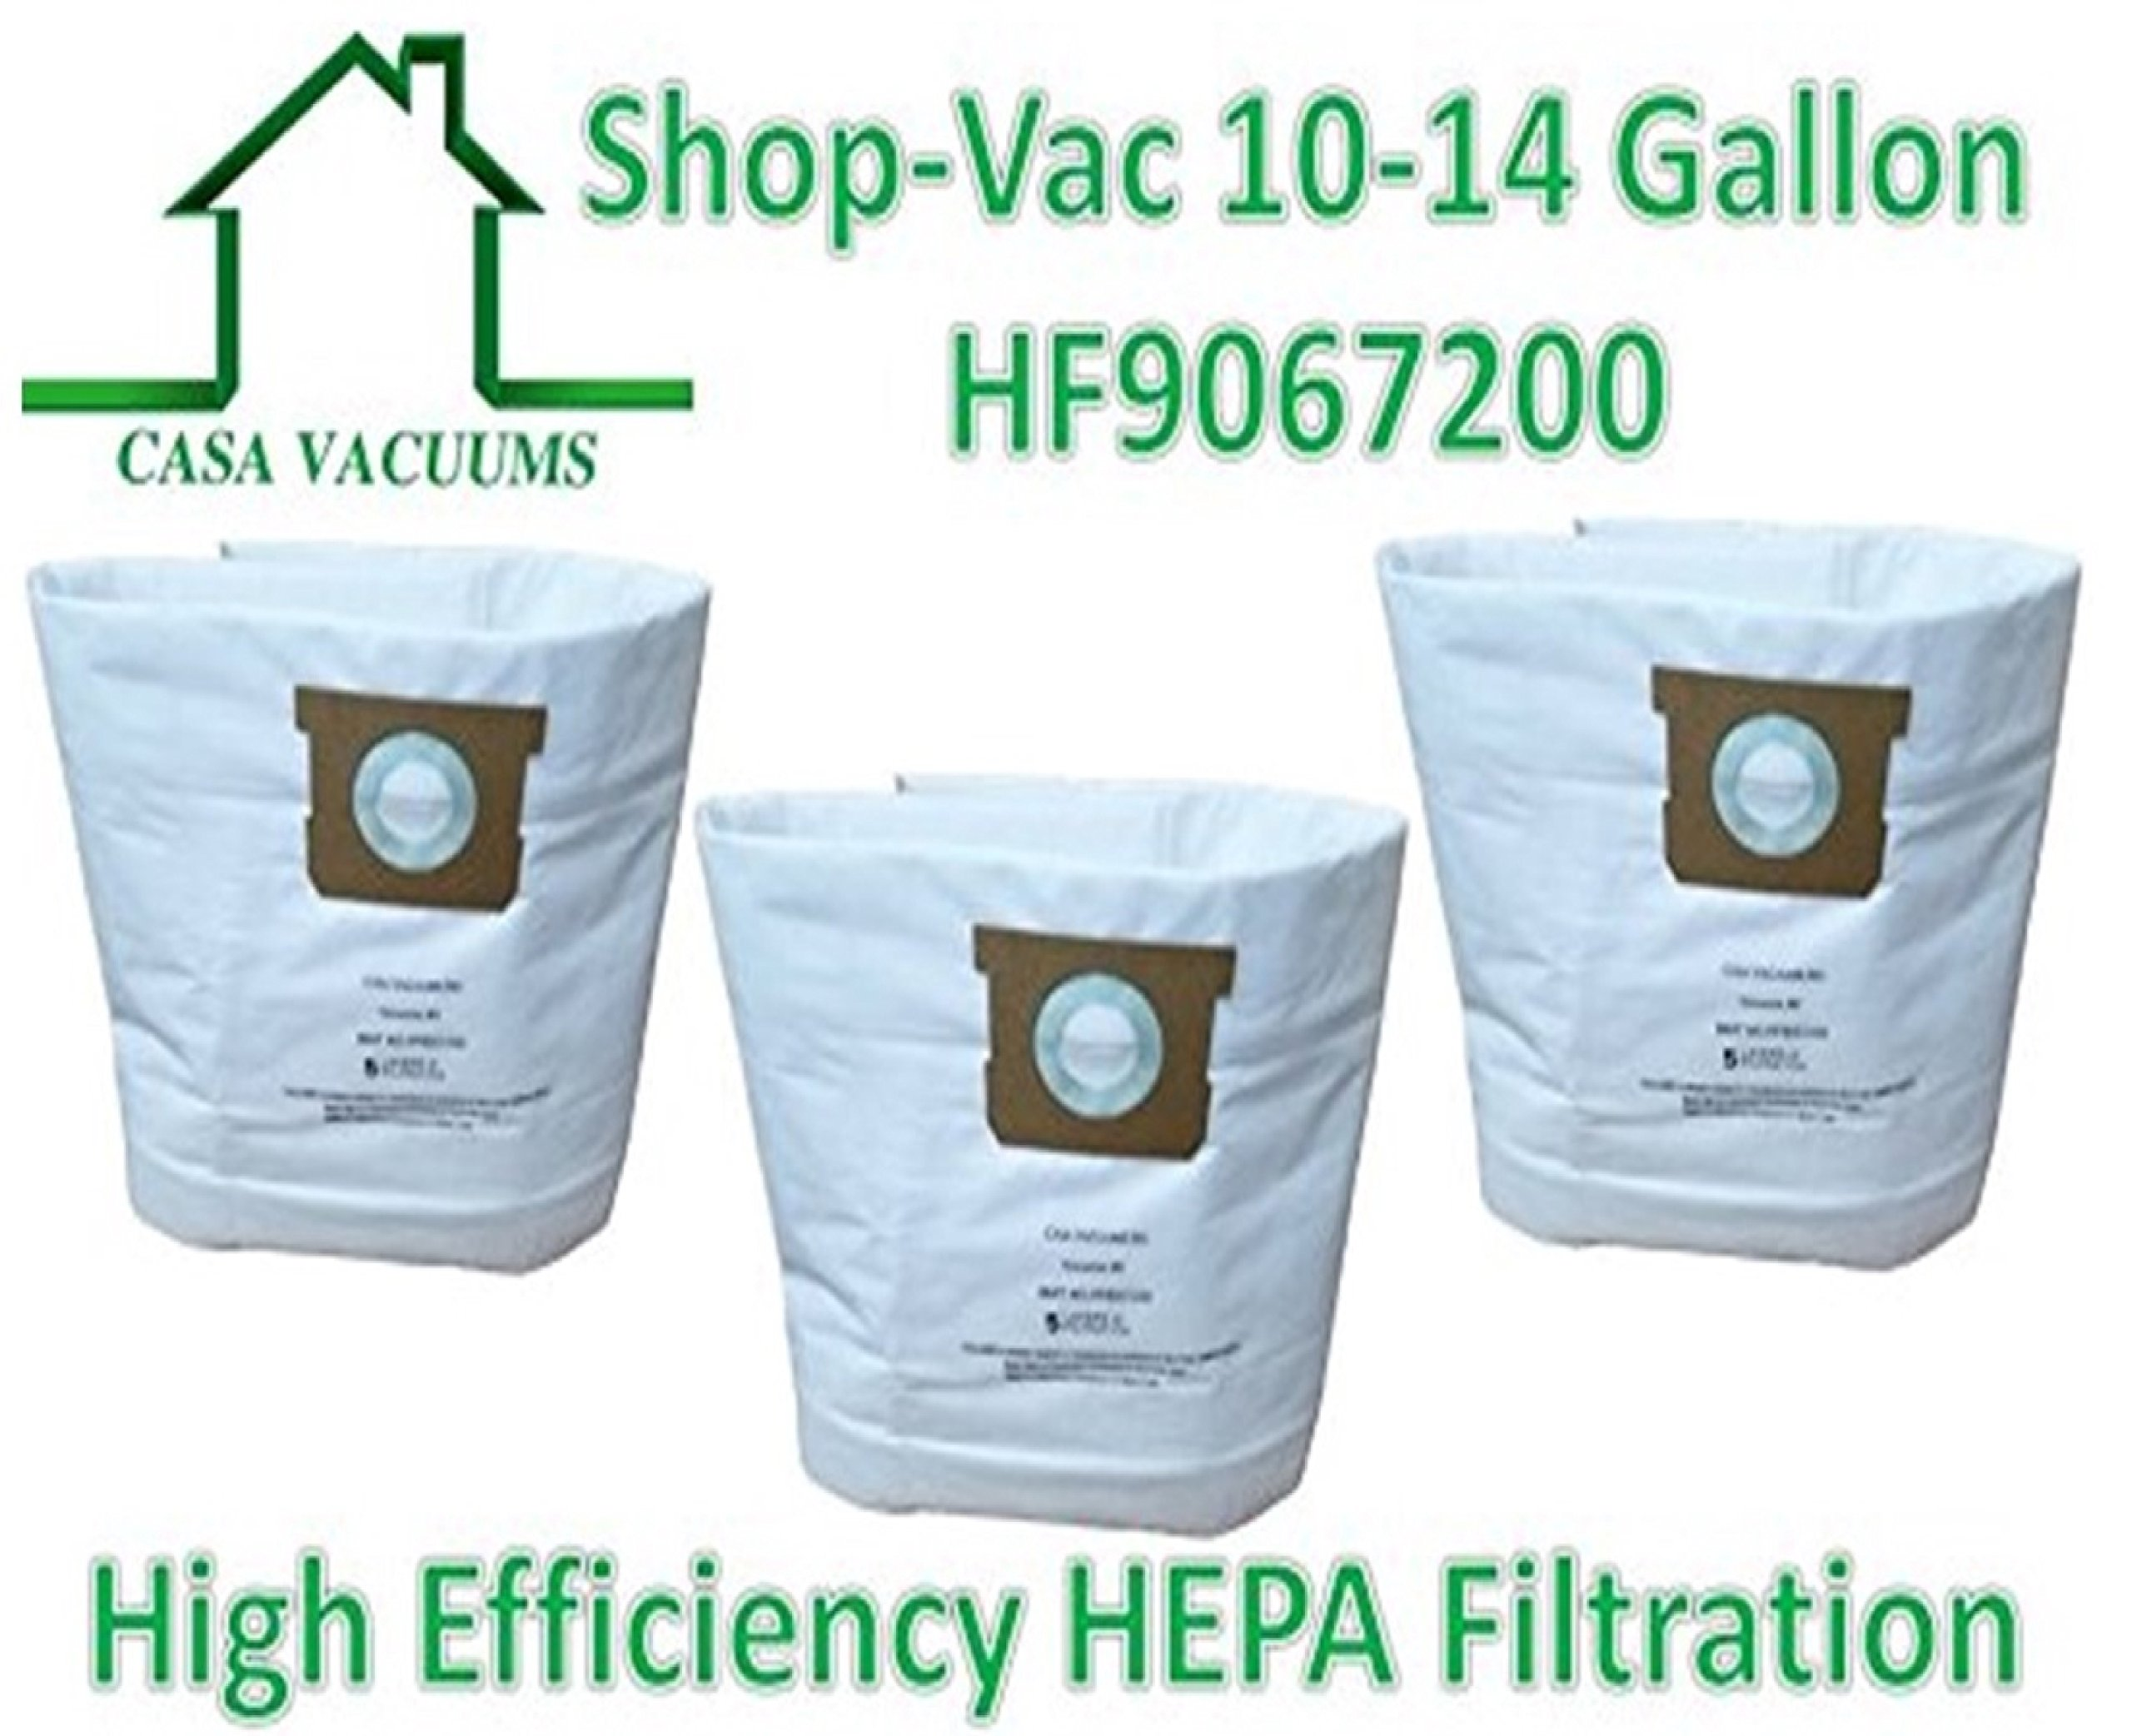 CASA VACUUMS replacement for Shop-Vac 9067200 10-14 Gallon Type I + Type F compatible High Efficiency Disposable HEPA FILTRATION Collection Bag, 3-Pack by Casa Vacuums